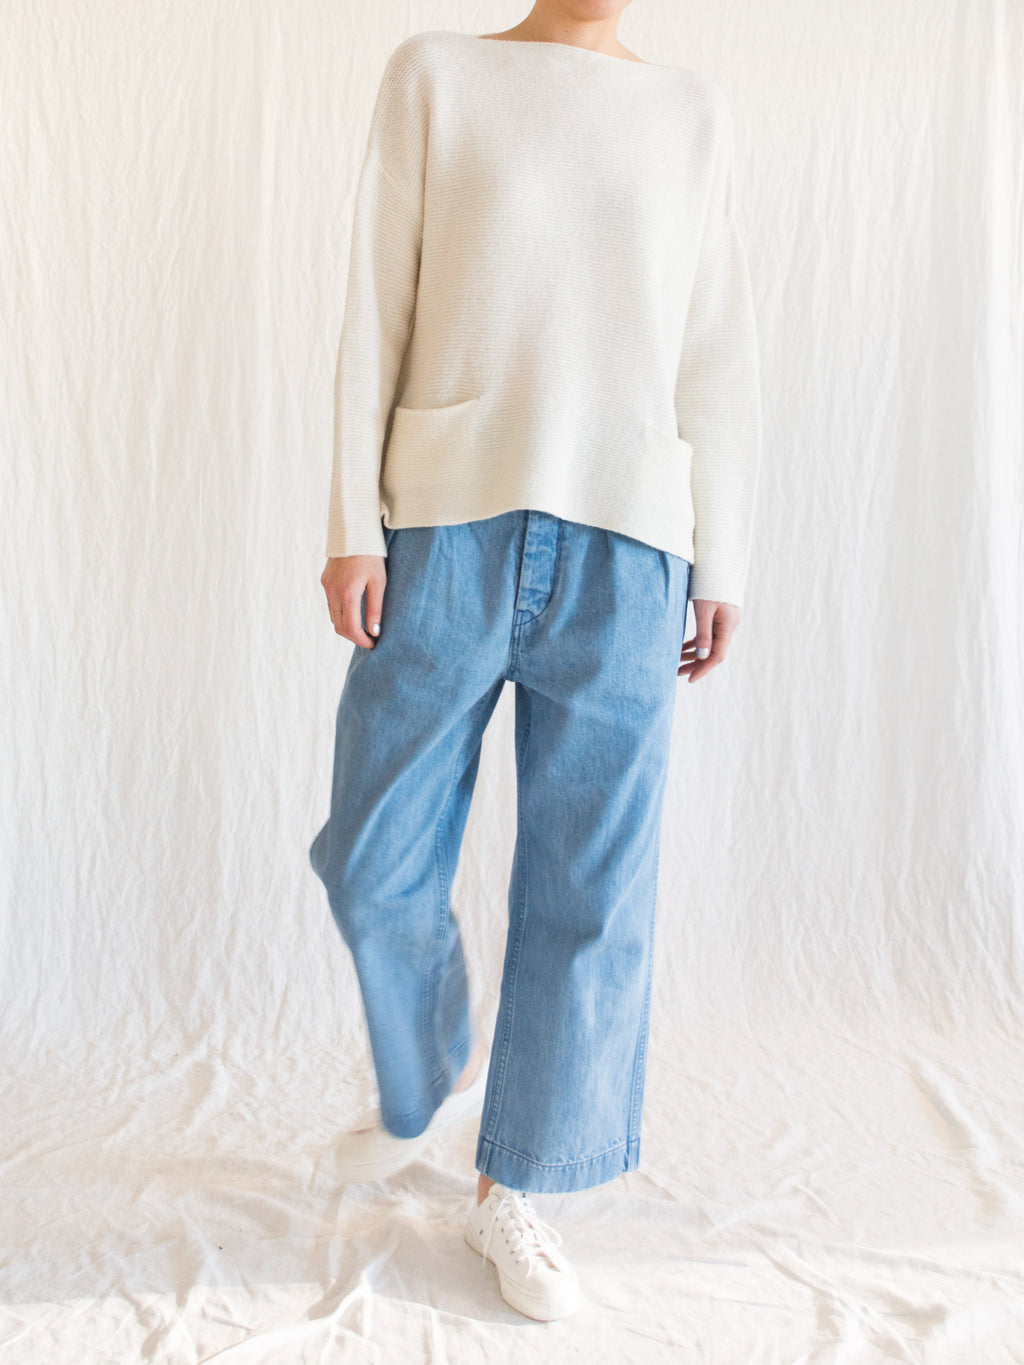 Namu Shop - Hatski 2Tack Denim Trouser - Ice Blue